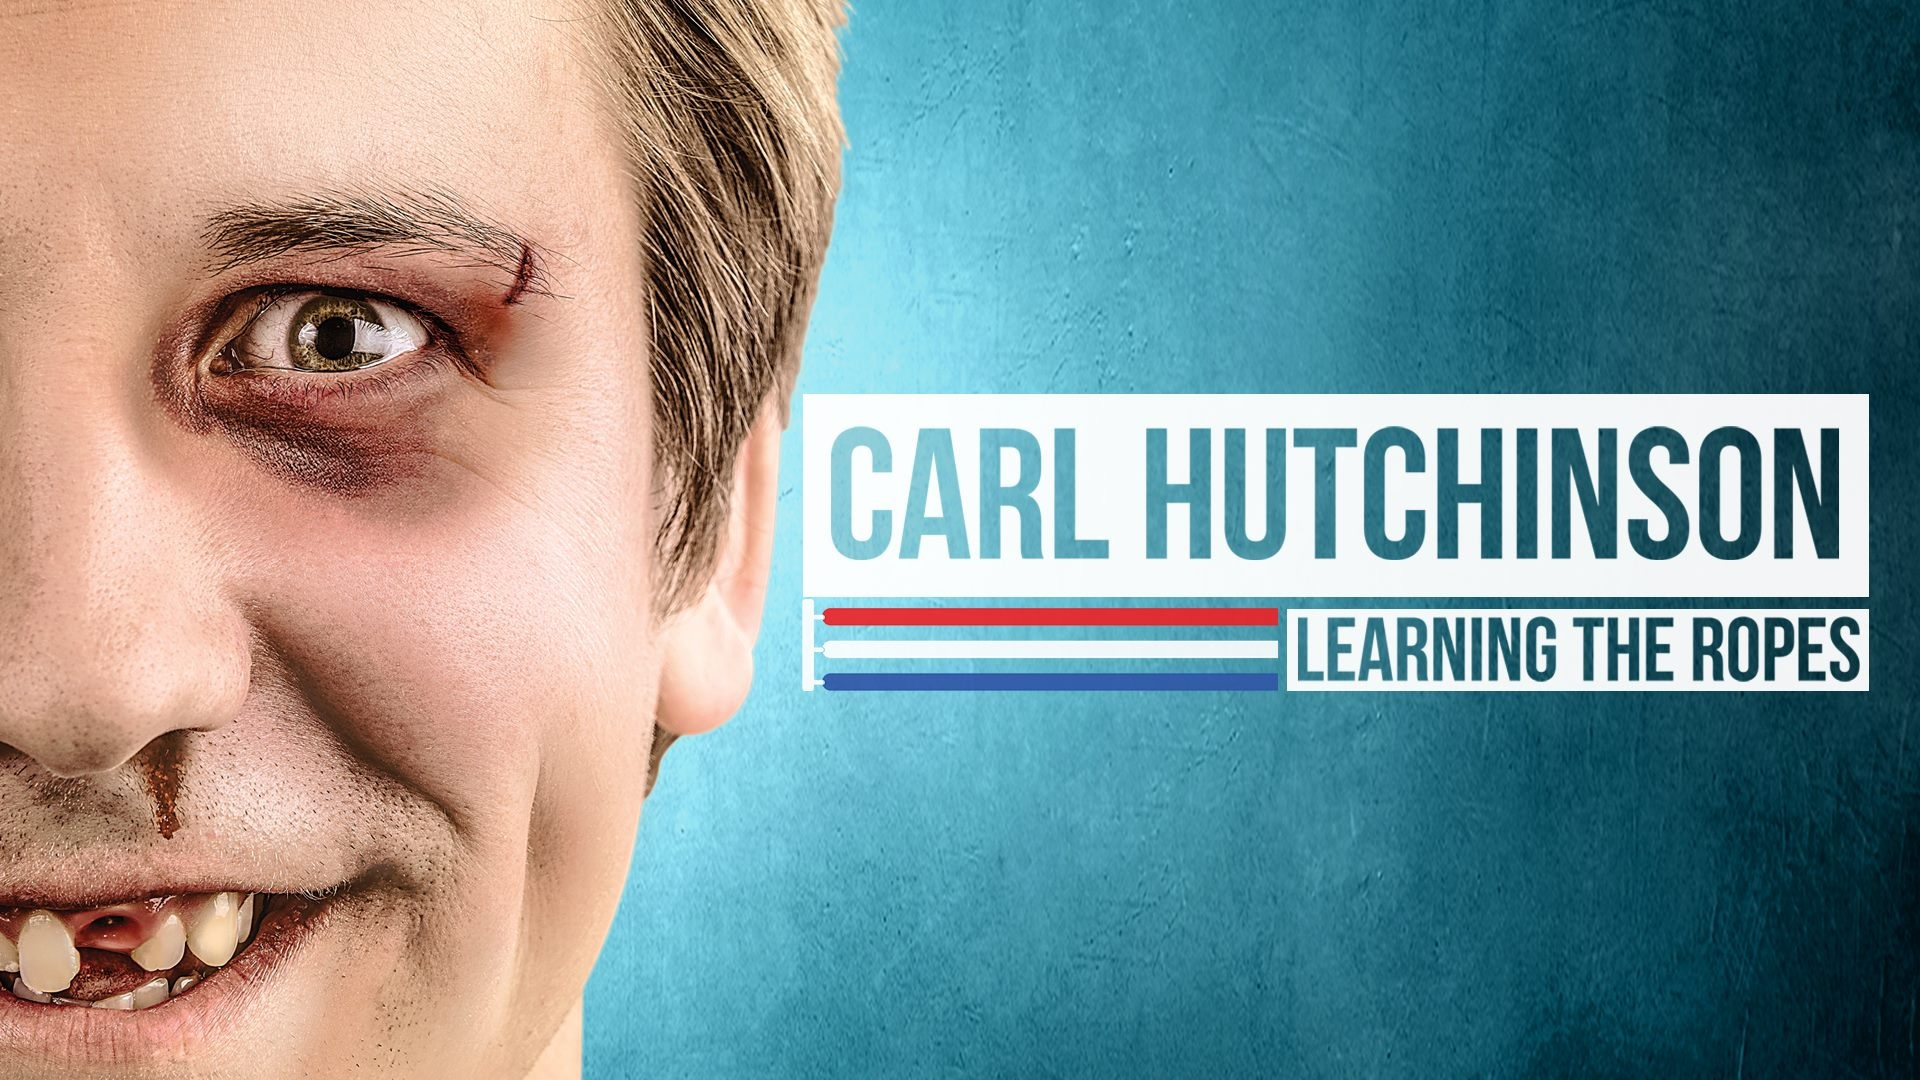 Carl Hutchinson Learning the Ropes OFFICIAL TRAILER 2015